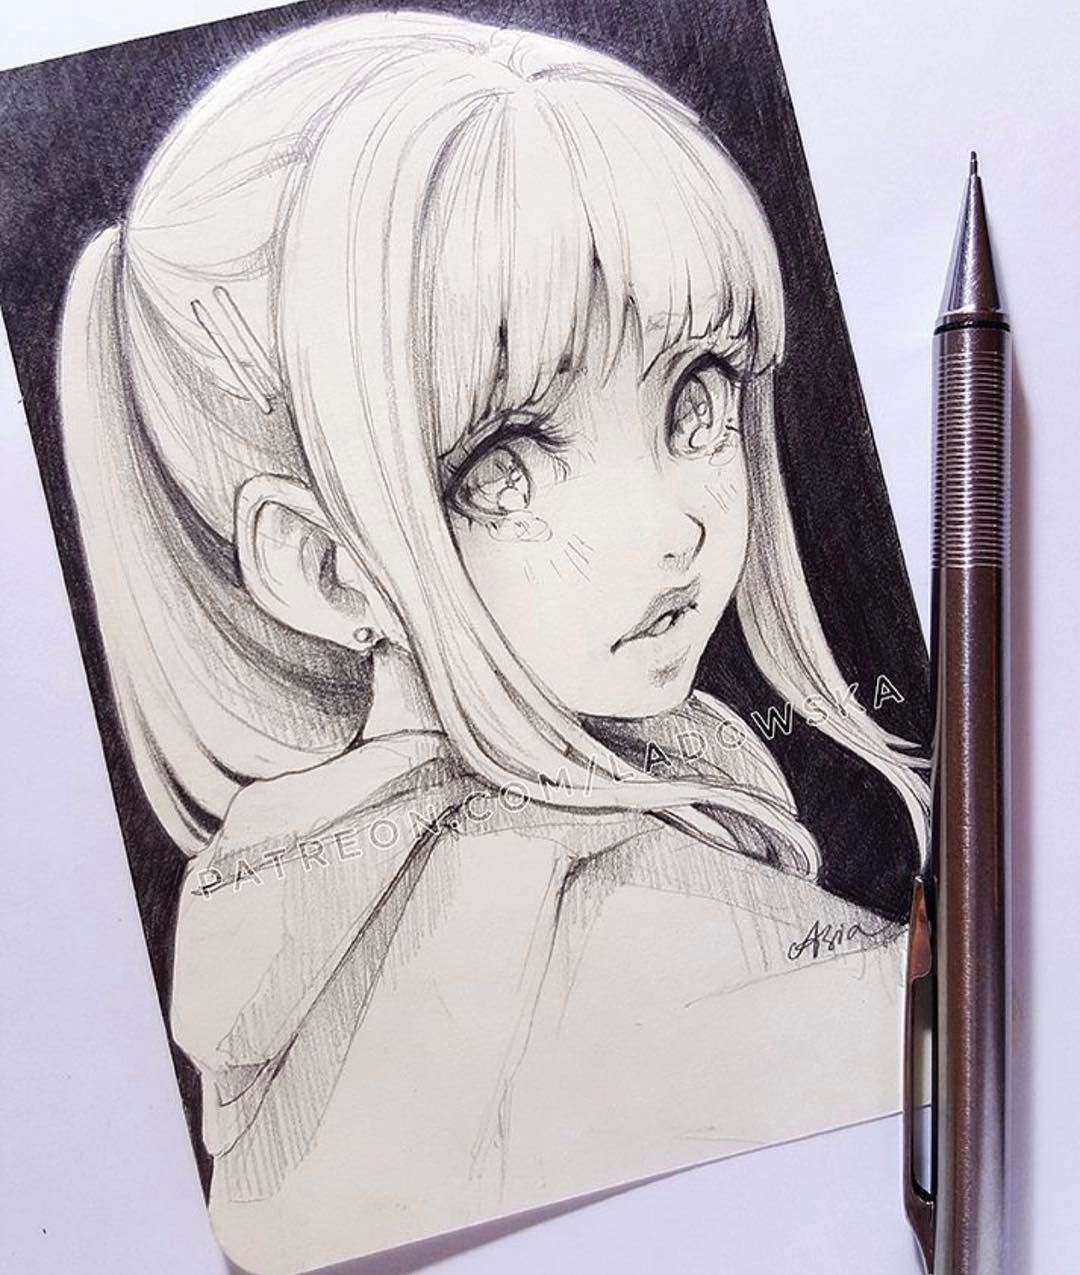 Art People Anime Art Art Sketches Anime Drawings Sketches